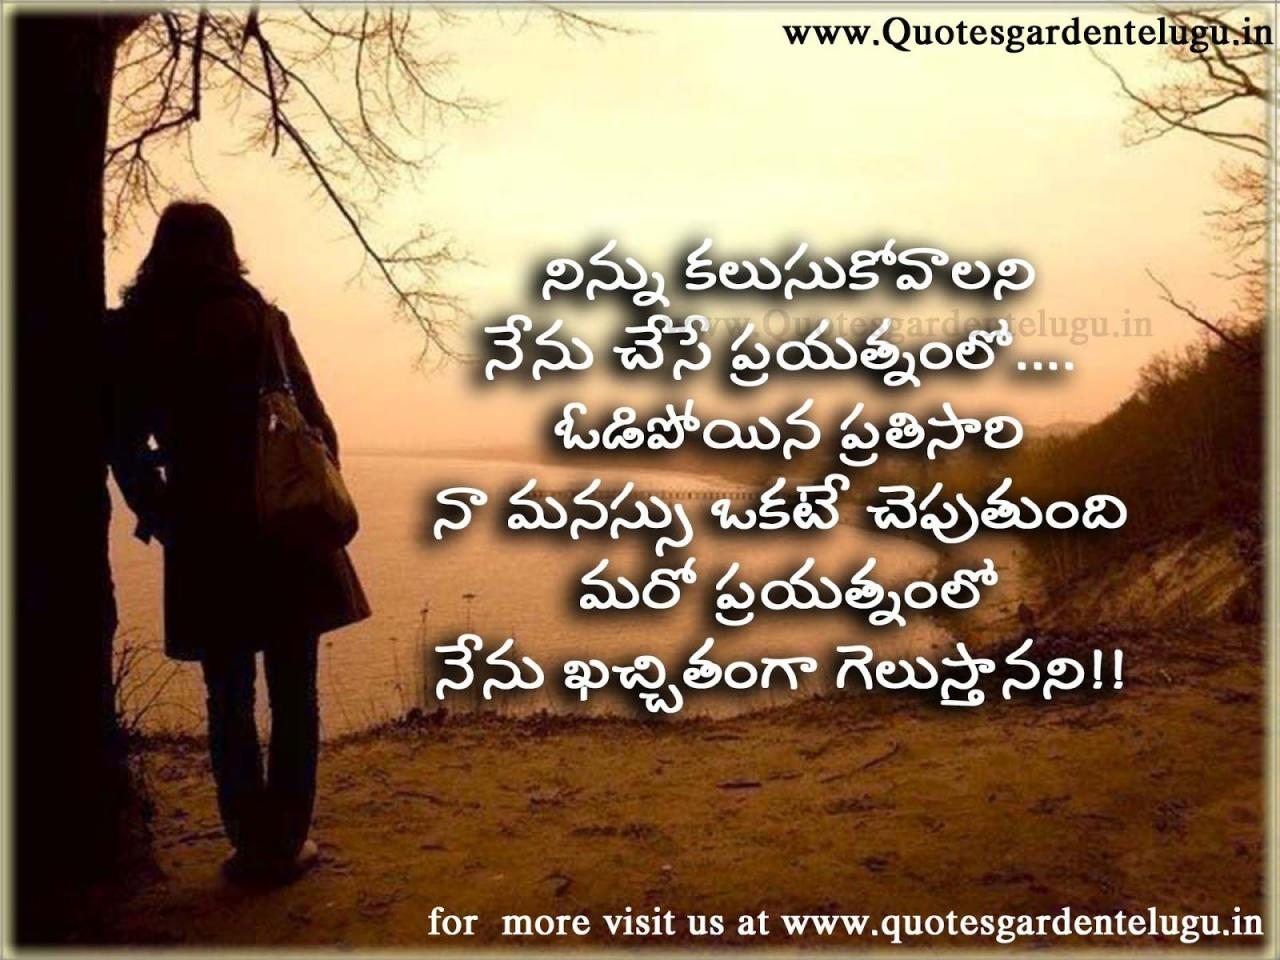 Here Is Telug Prema Kavitalu Beautiful Love Messages For Girl Friends Nice Touching Love Quotes For Lovers Heart Touching Love